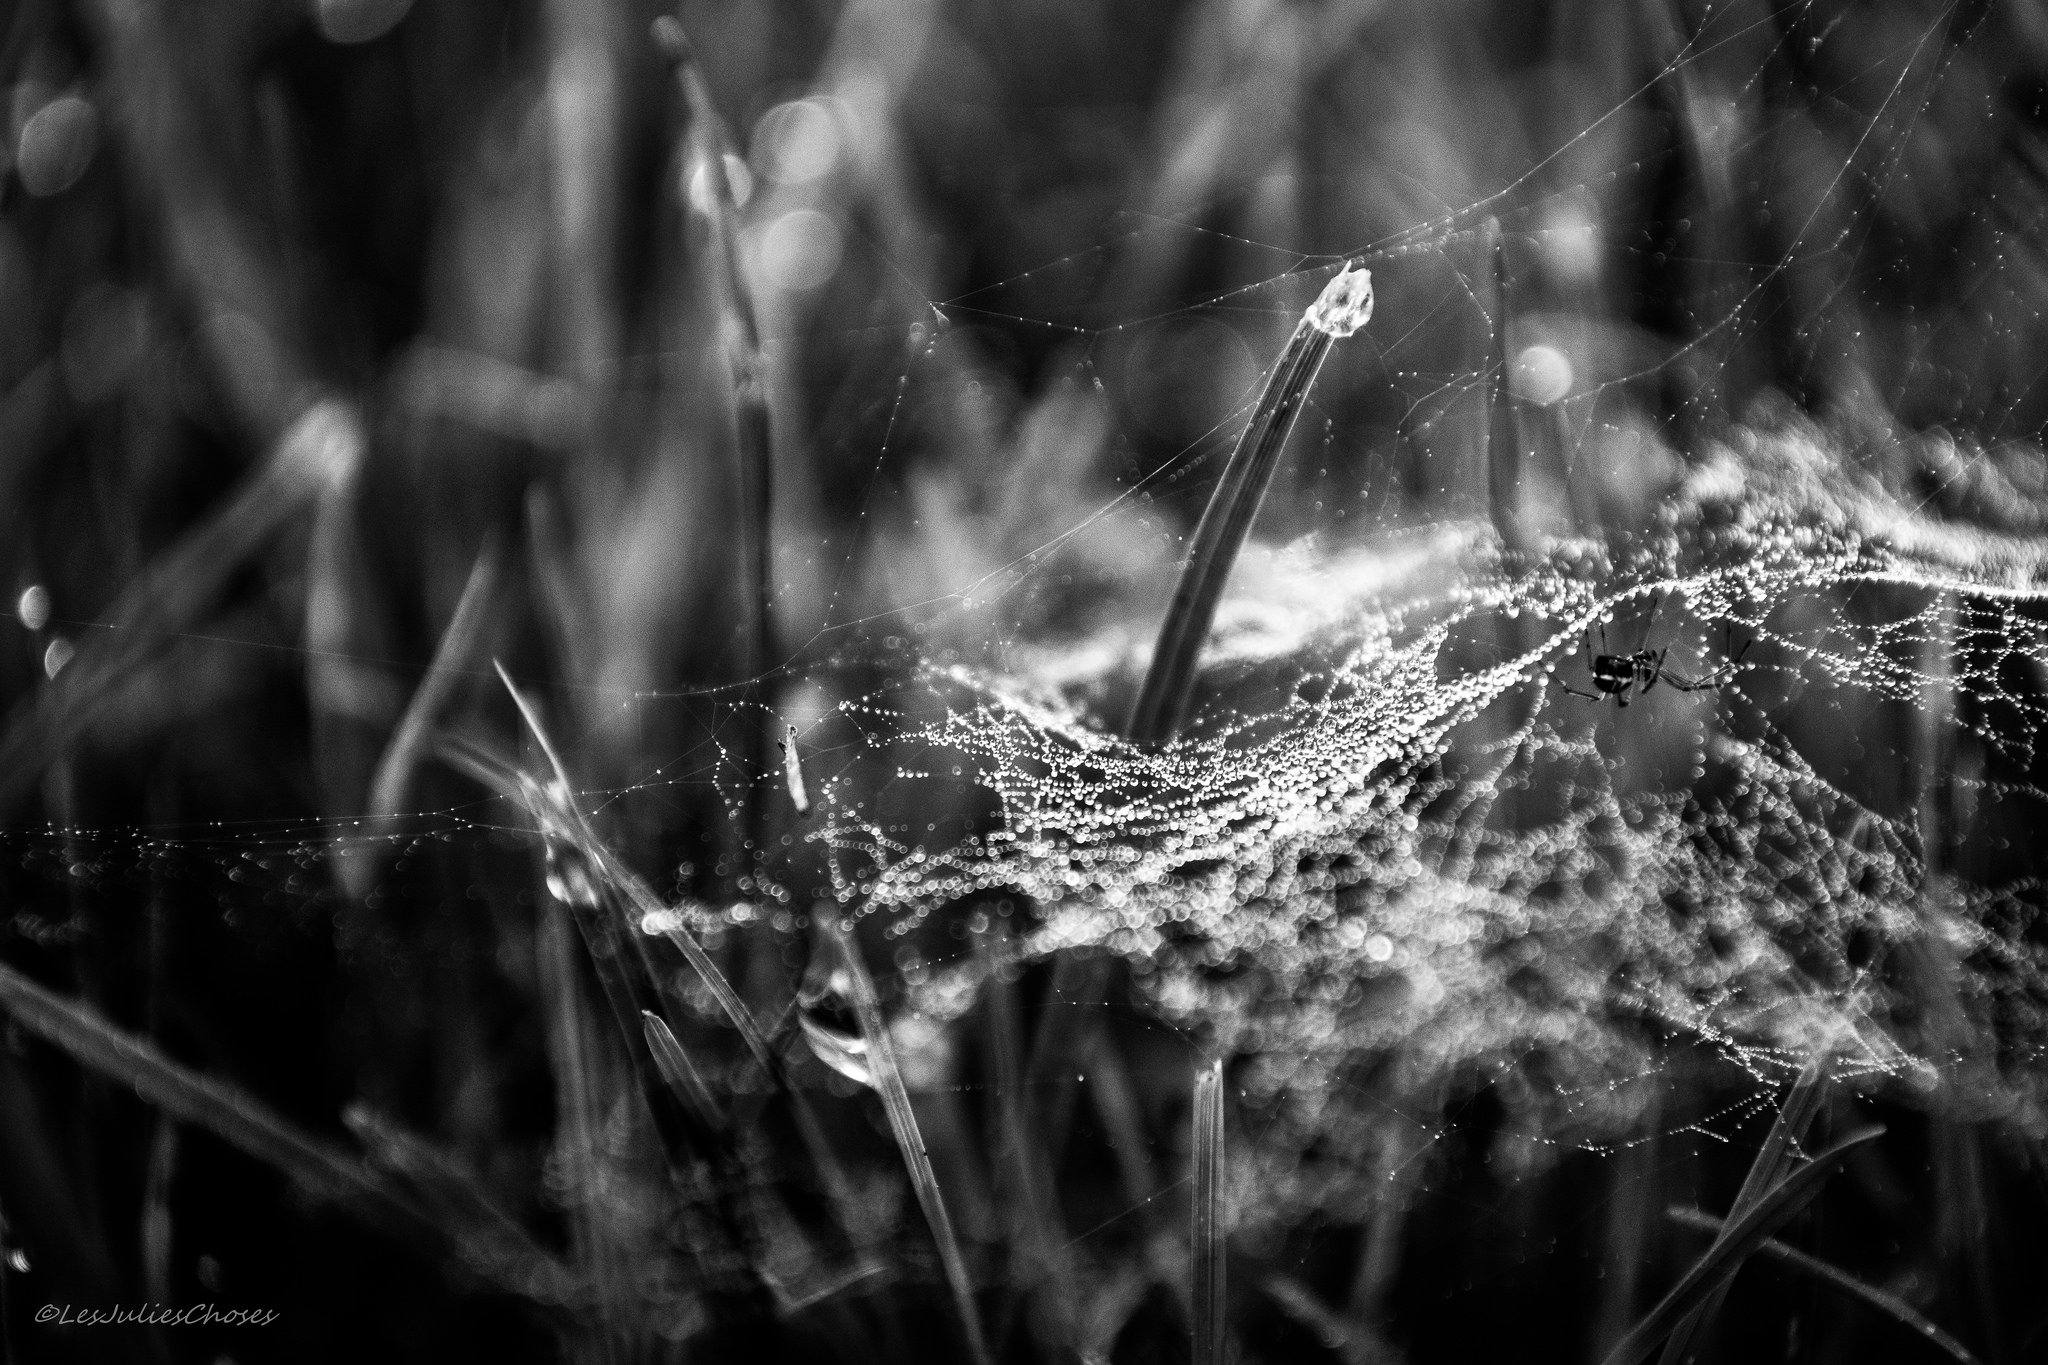 Black and white image of a dome-shaped spider web in the grass